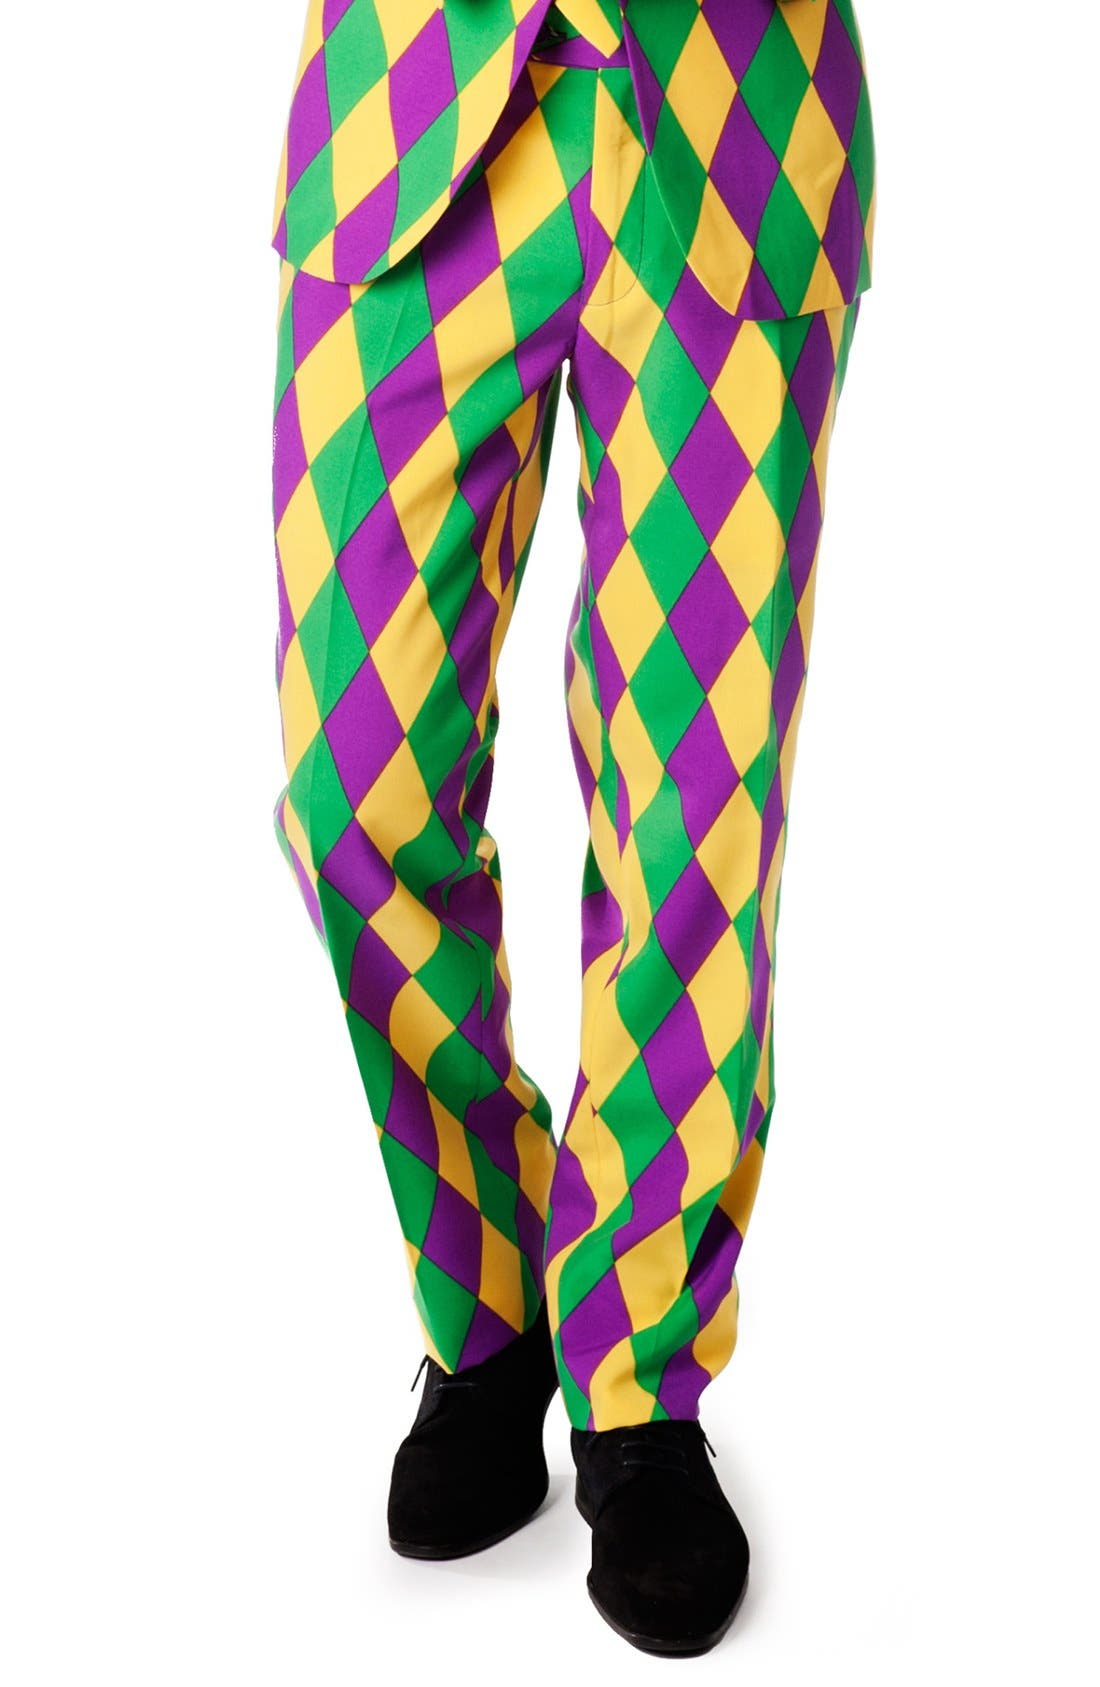 'Harleking' Trim Fit Suit with Tie,                             Alternate thumbnail 5, color,                             Green/ Purple/ Yellow